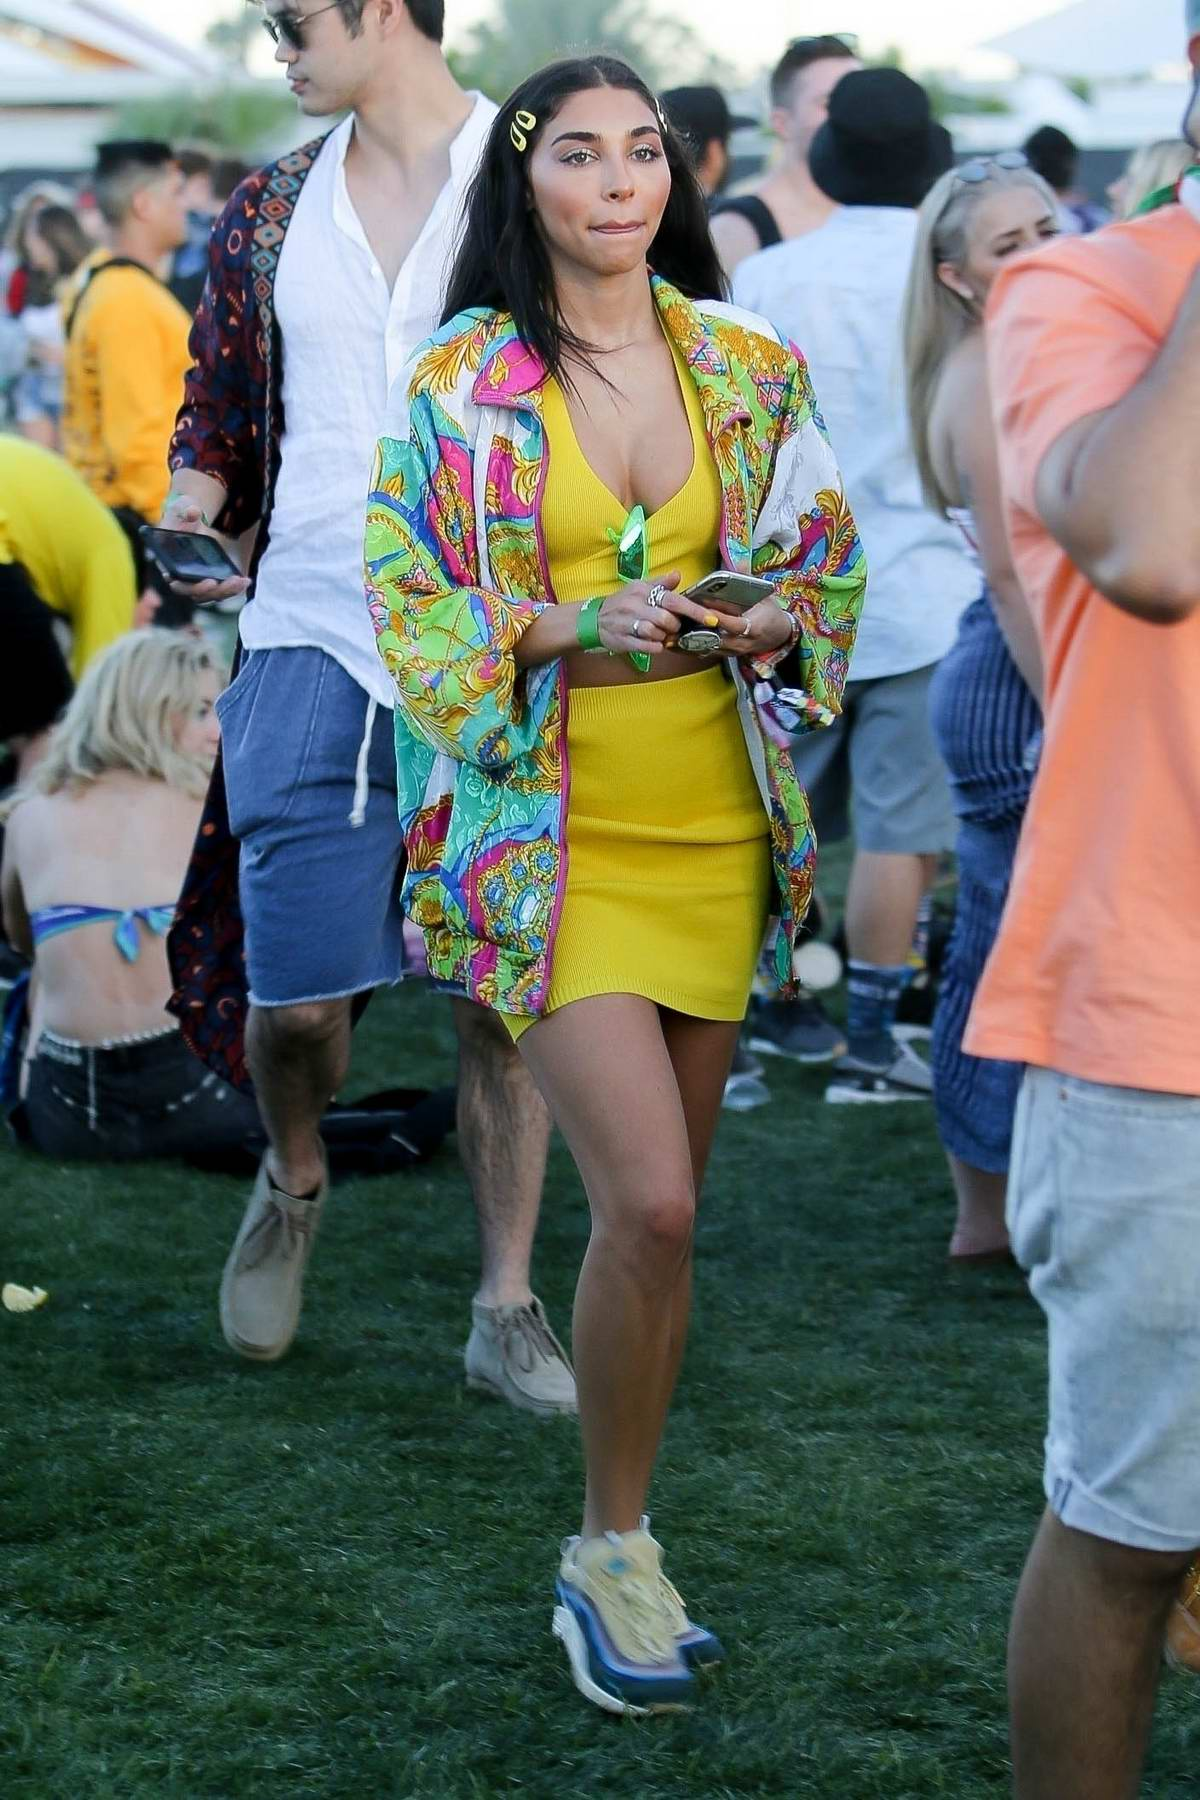 Chantel Jeffries and Ross Butler exploring the fair grounds with friends at Coachella in Indio, California